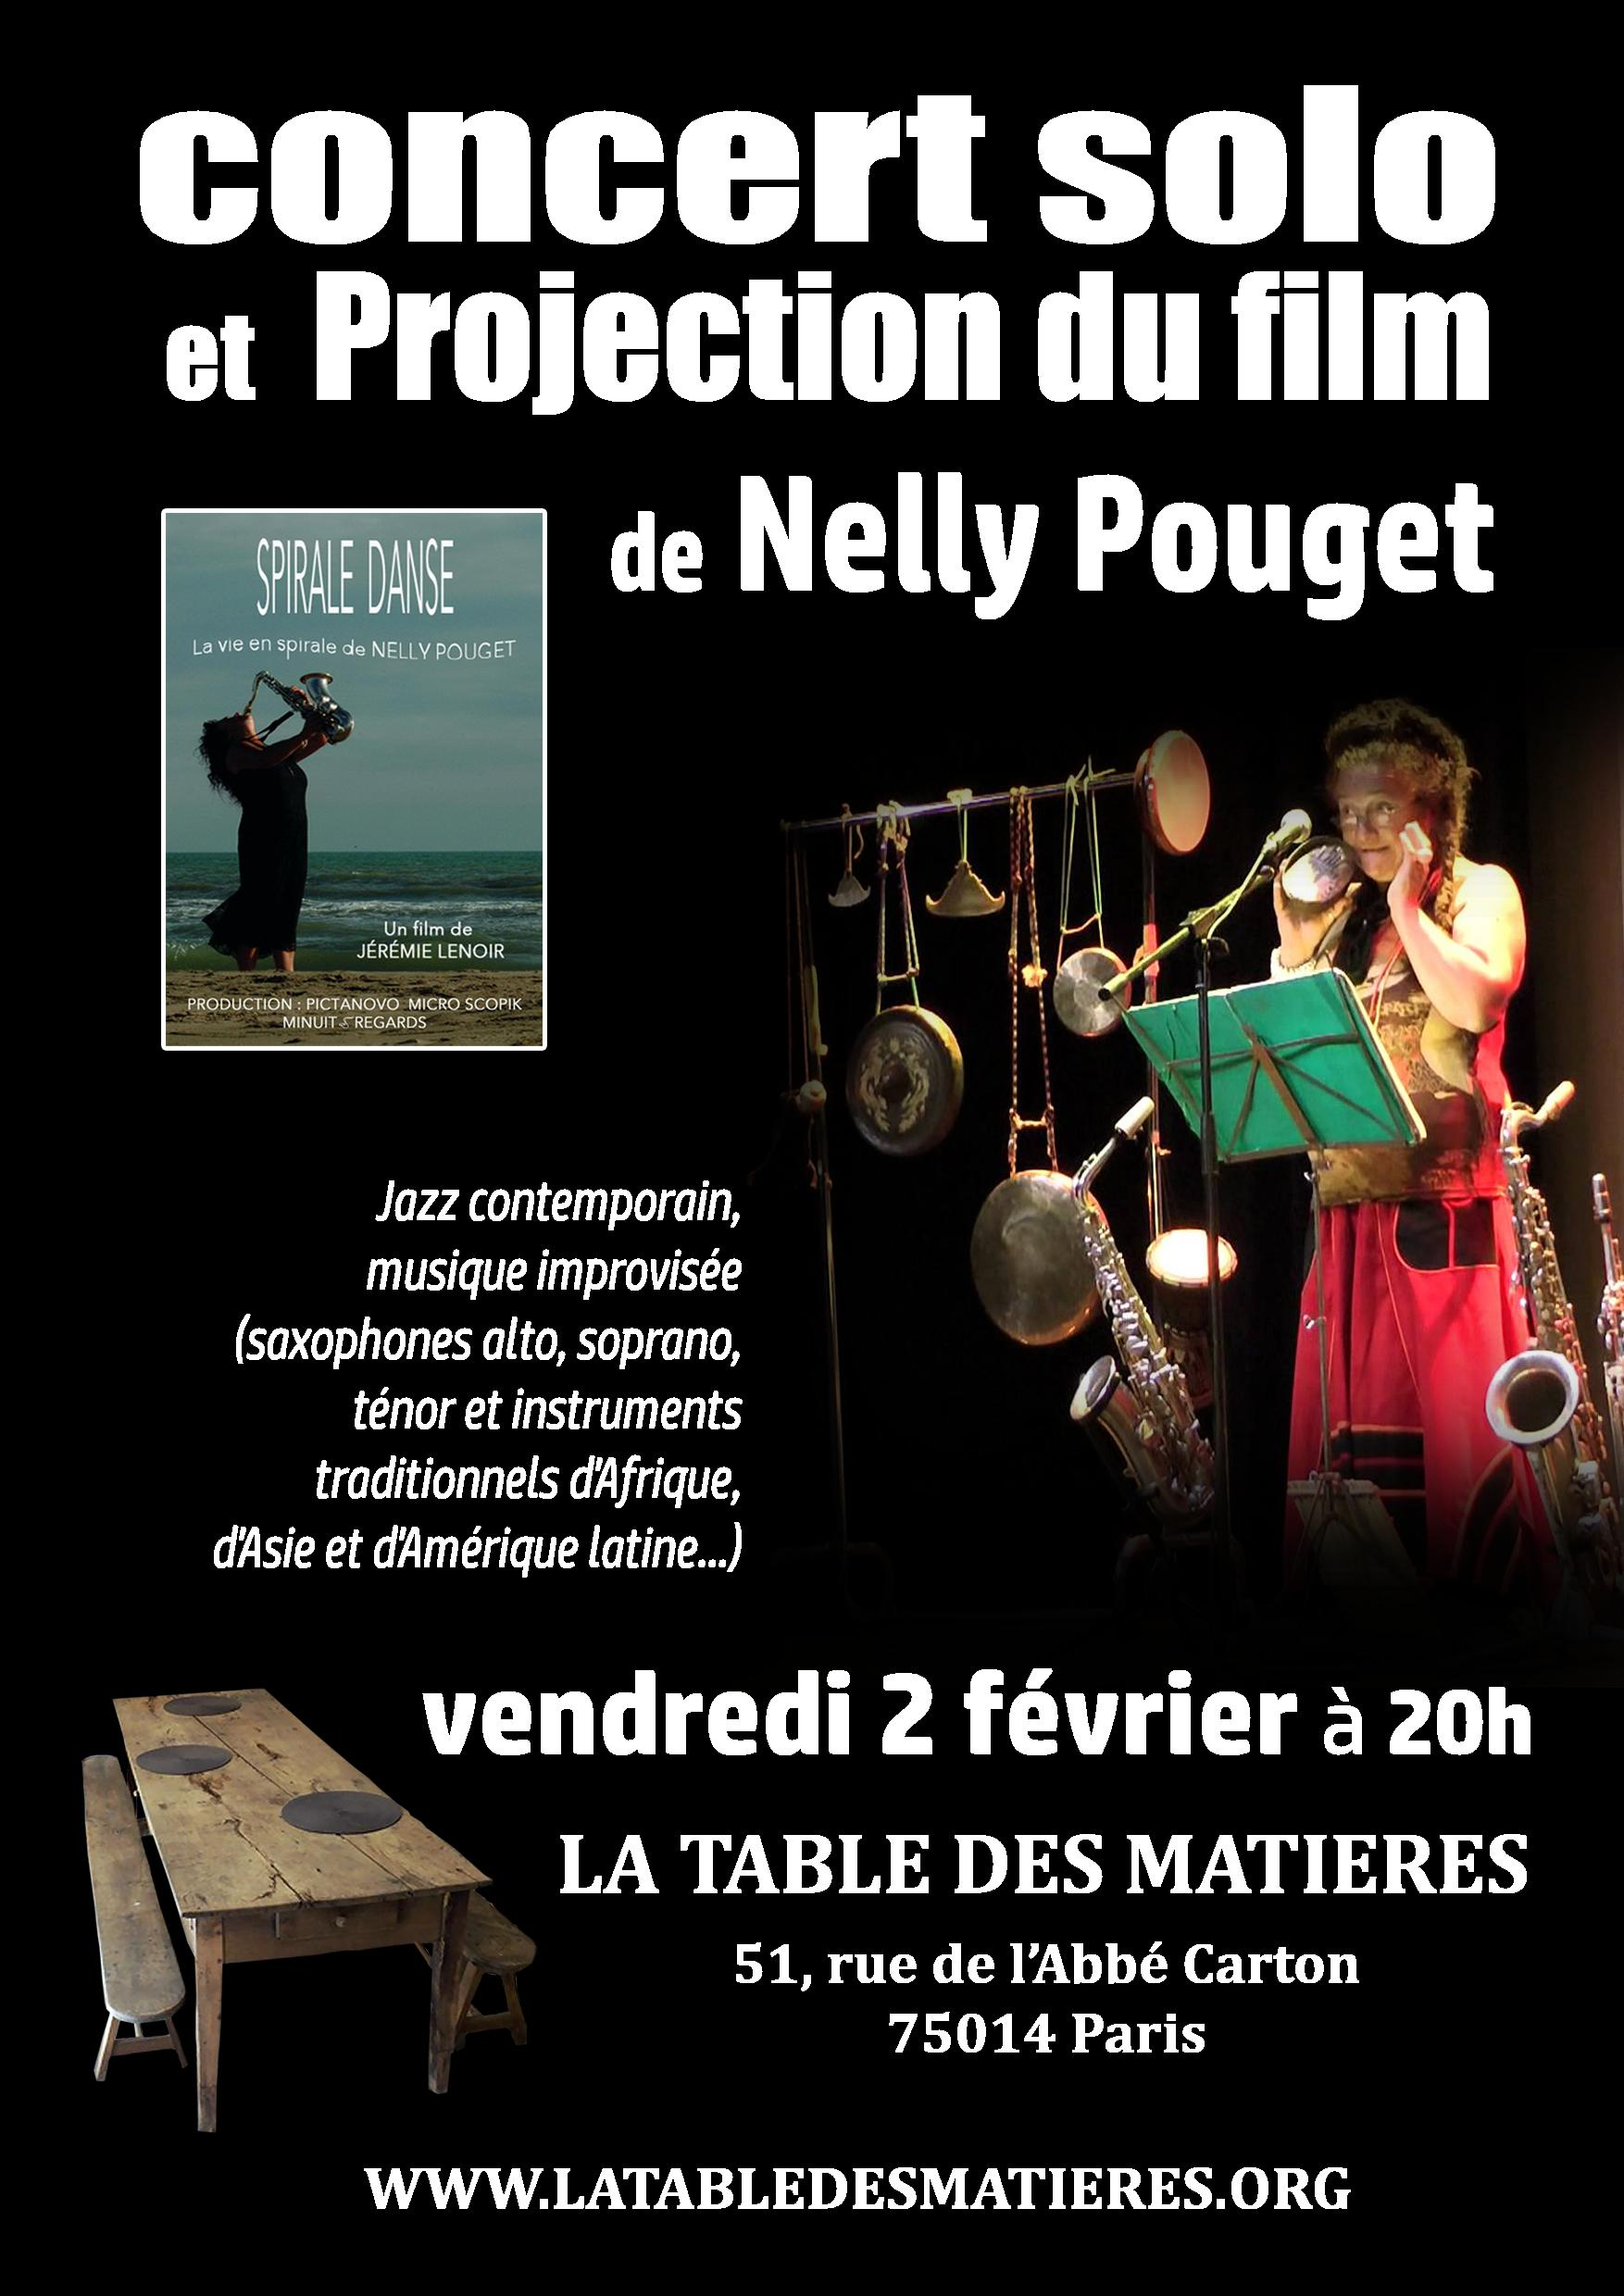 rencontre avec nelly pouget projection du film spirale danse et concert la table des mati res. Black Bedroom Furniture Sets. Home Design Ideas